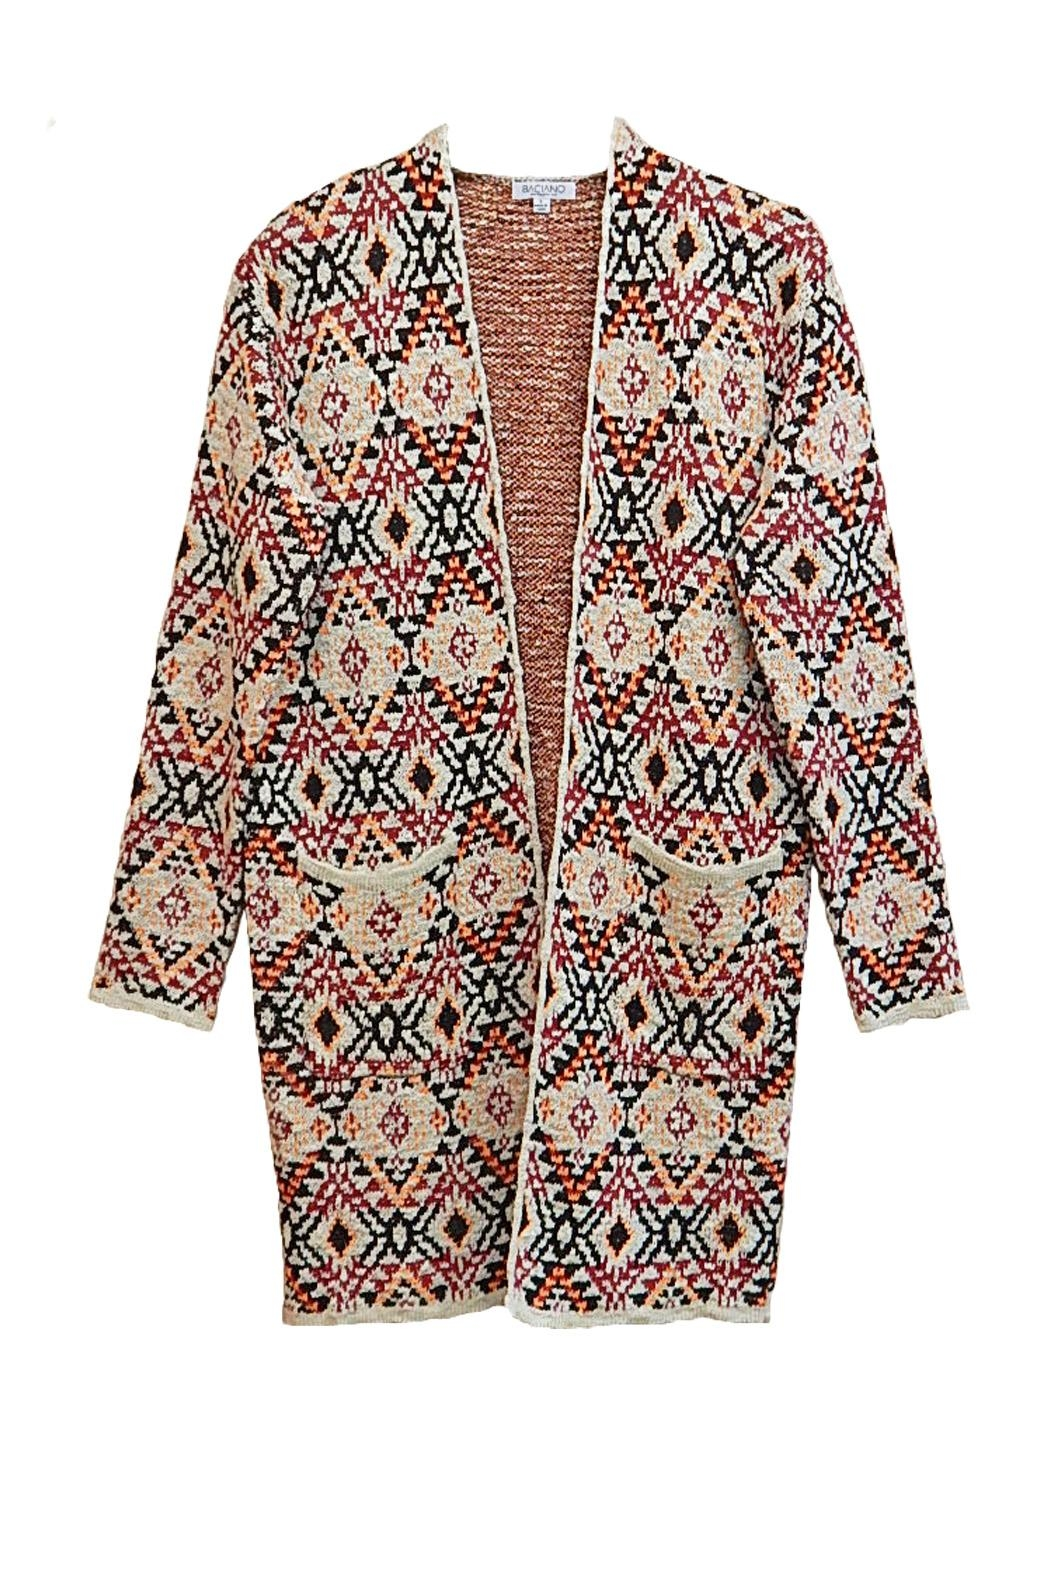 Baciano Orange Print Cardigan - Main Image